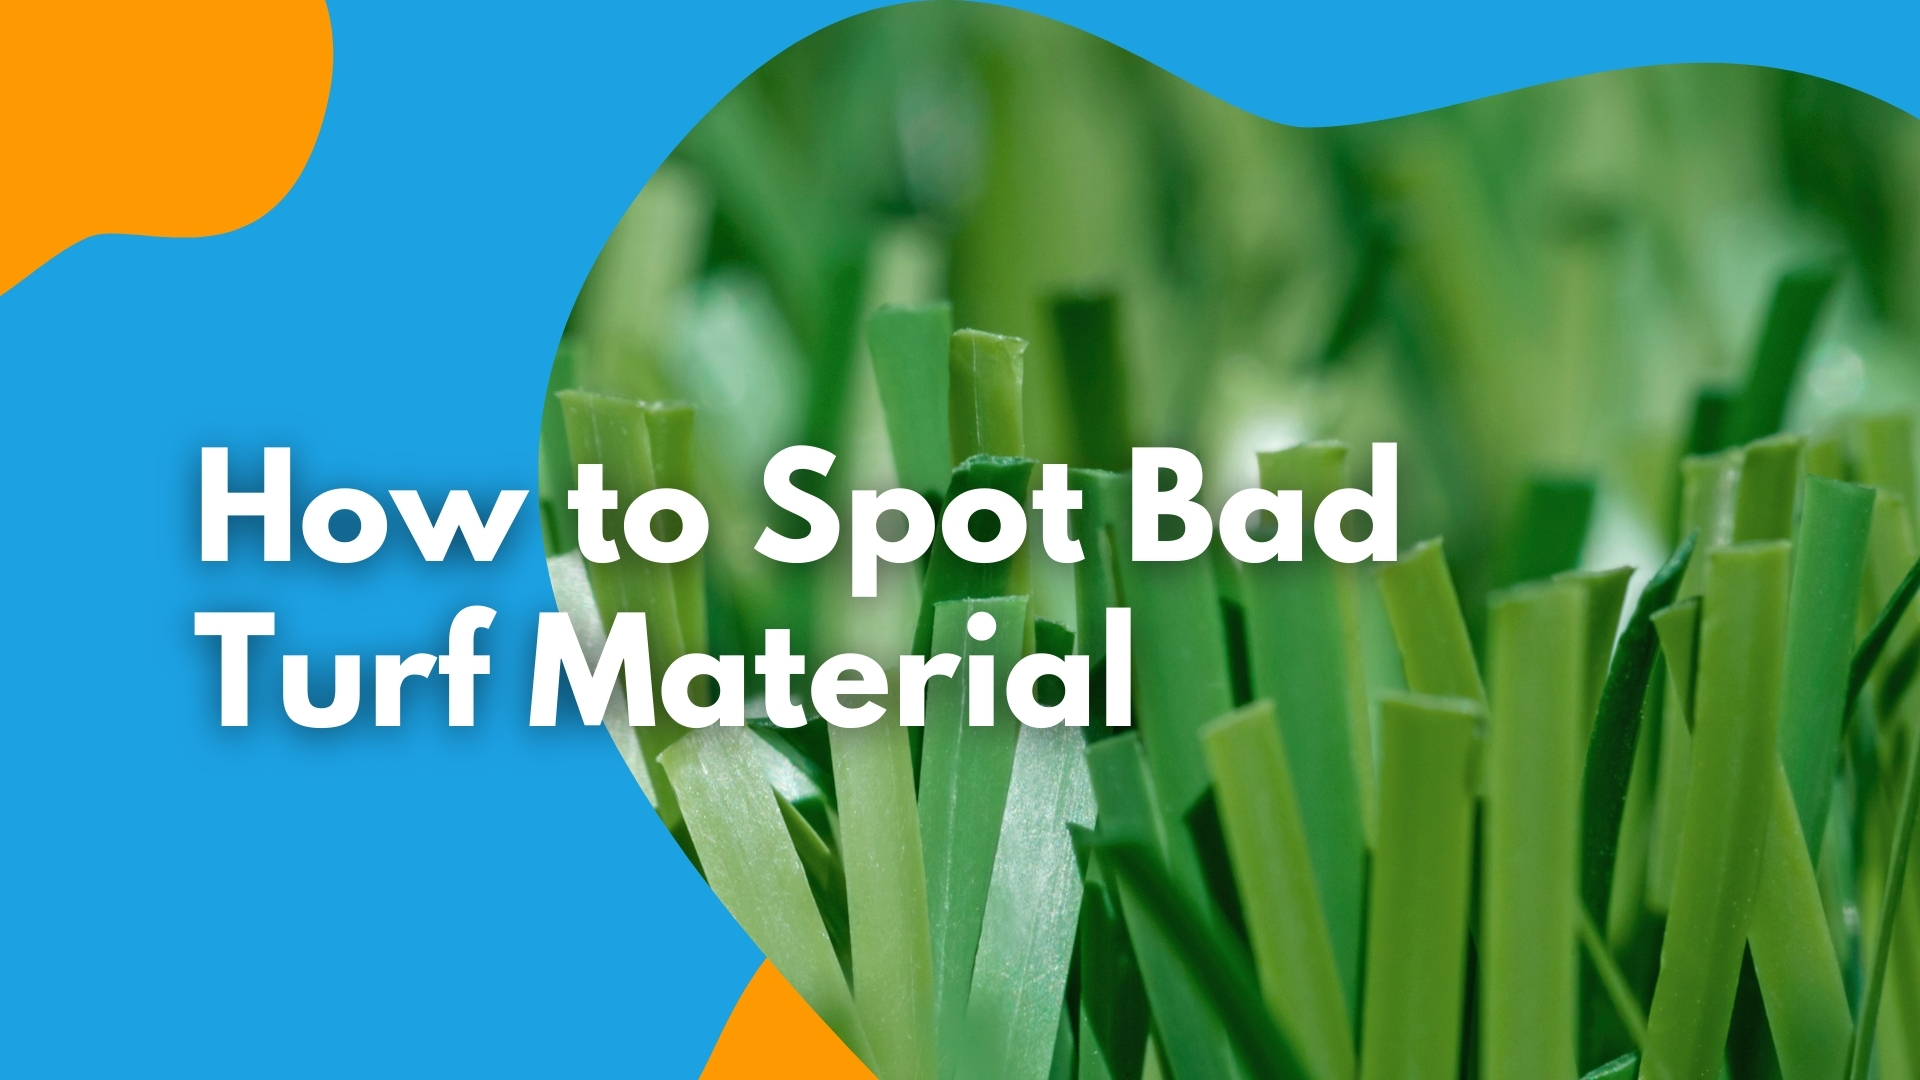 How to Spot Bad Turf Material